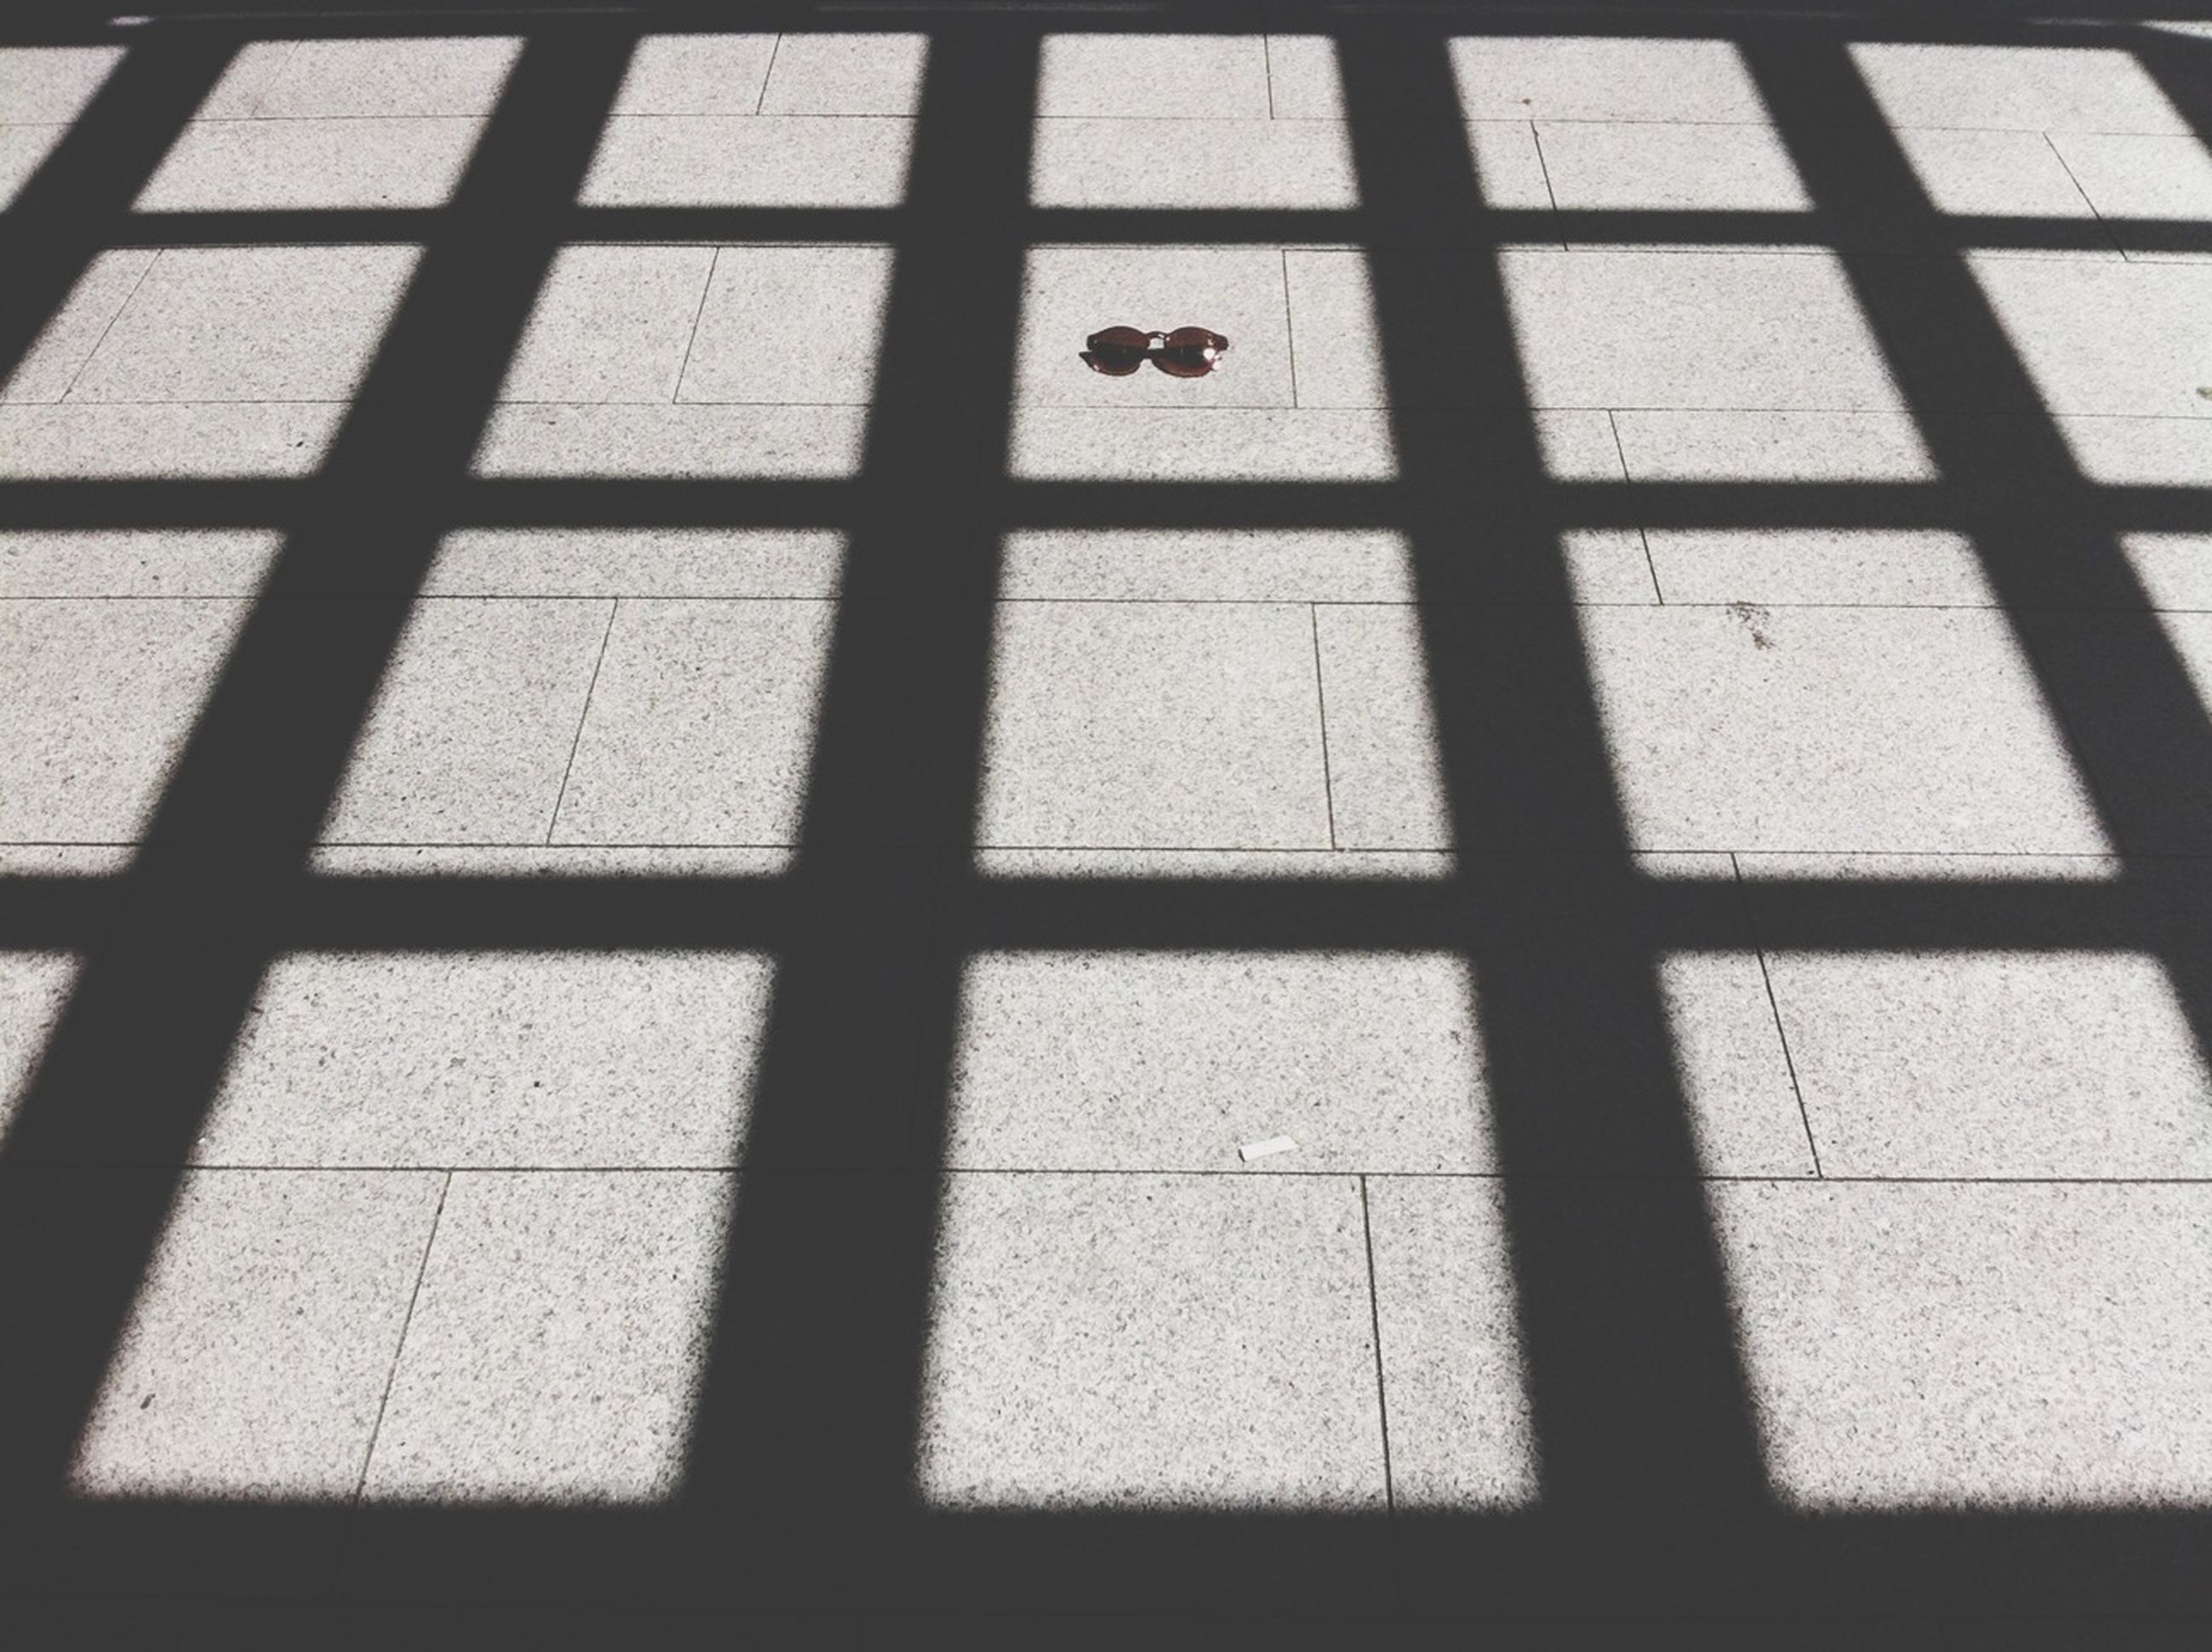 window, shadow, pattern, full frame, architecture, built structure, indoors, backgrounds, sunlight, geometric shape, square shape, day, building exterior, glass - material, no people, textured, tiled floor, wall - building feature, transparent